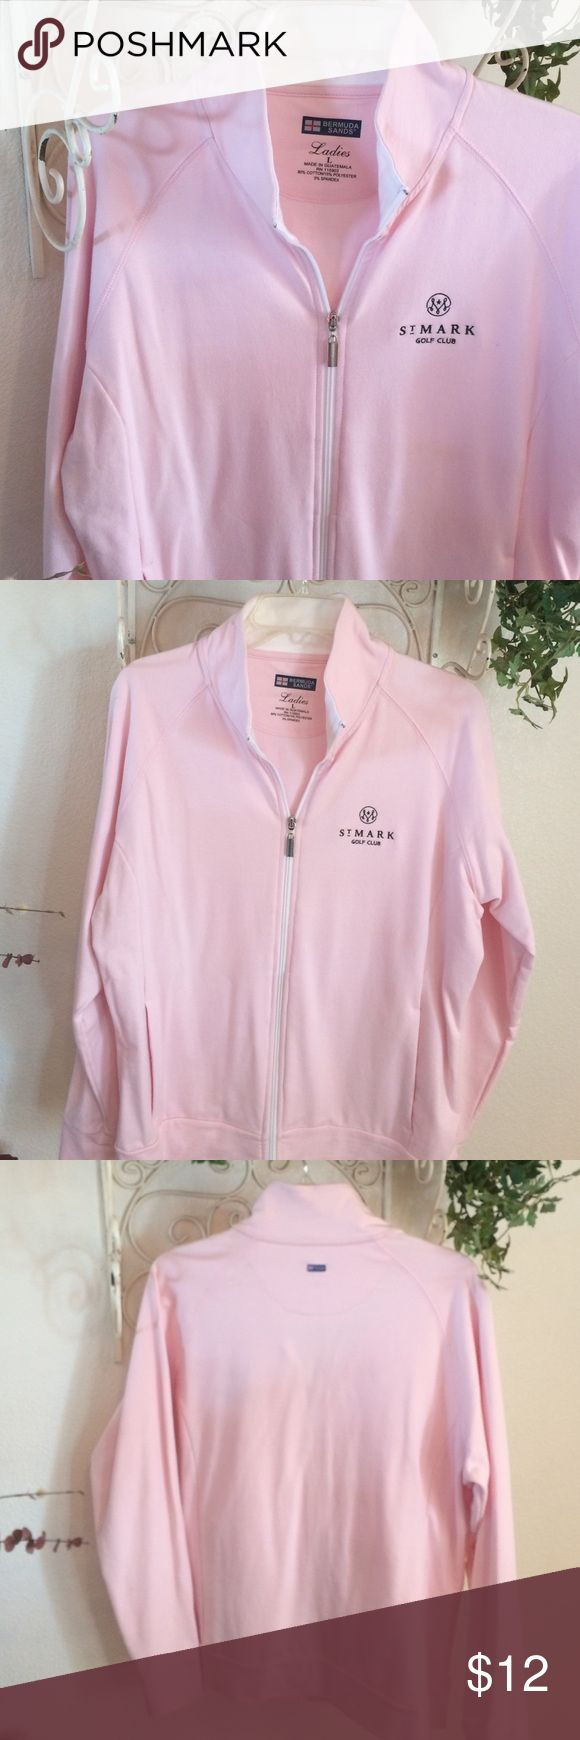 Women's pink zip up sweat shirt Pink and white, St mark golf club sweat shirt Tops Sweatshirts & Hoodies